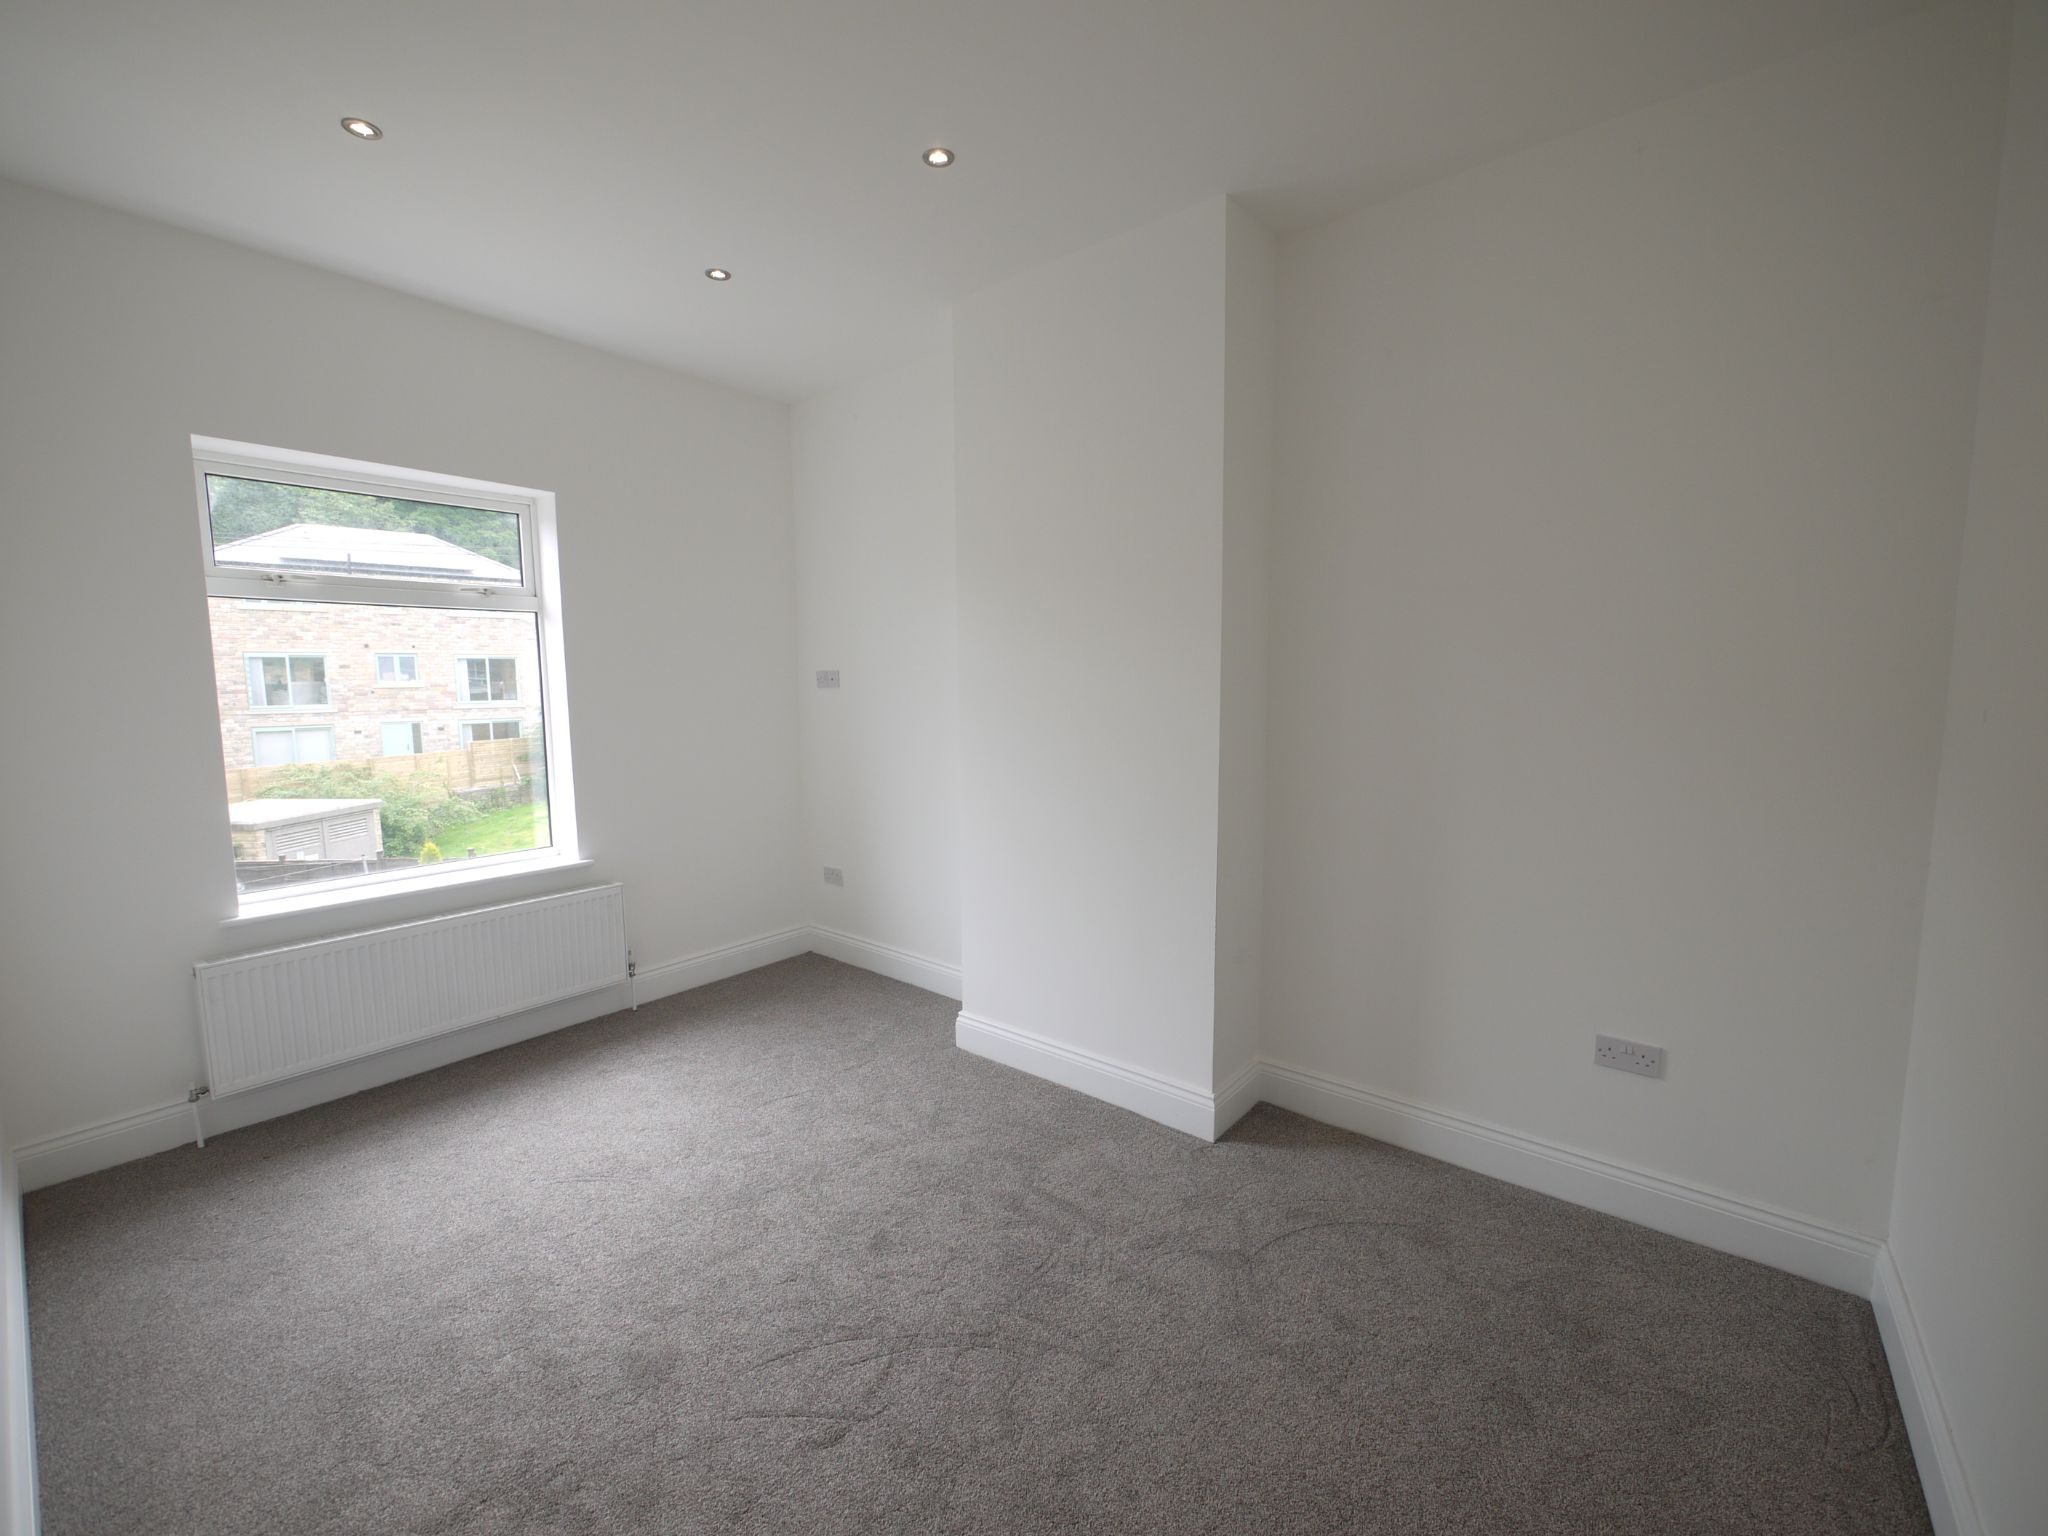 3 bedroom mid terraced house For Sale in Brighouse - Bedroom 1.